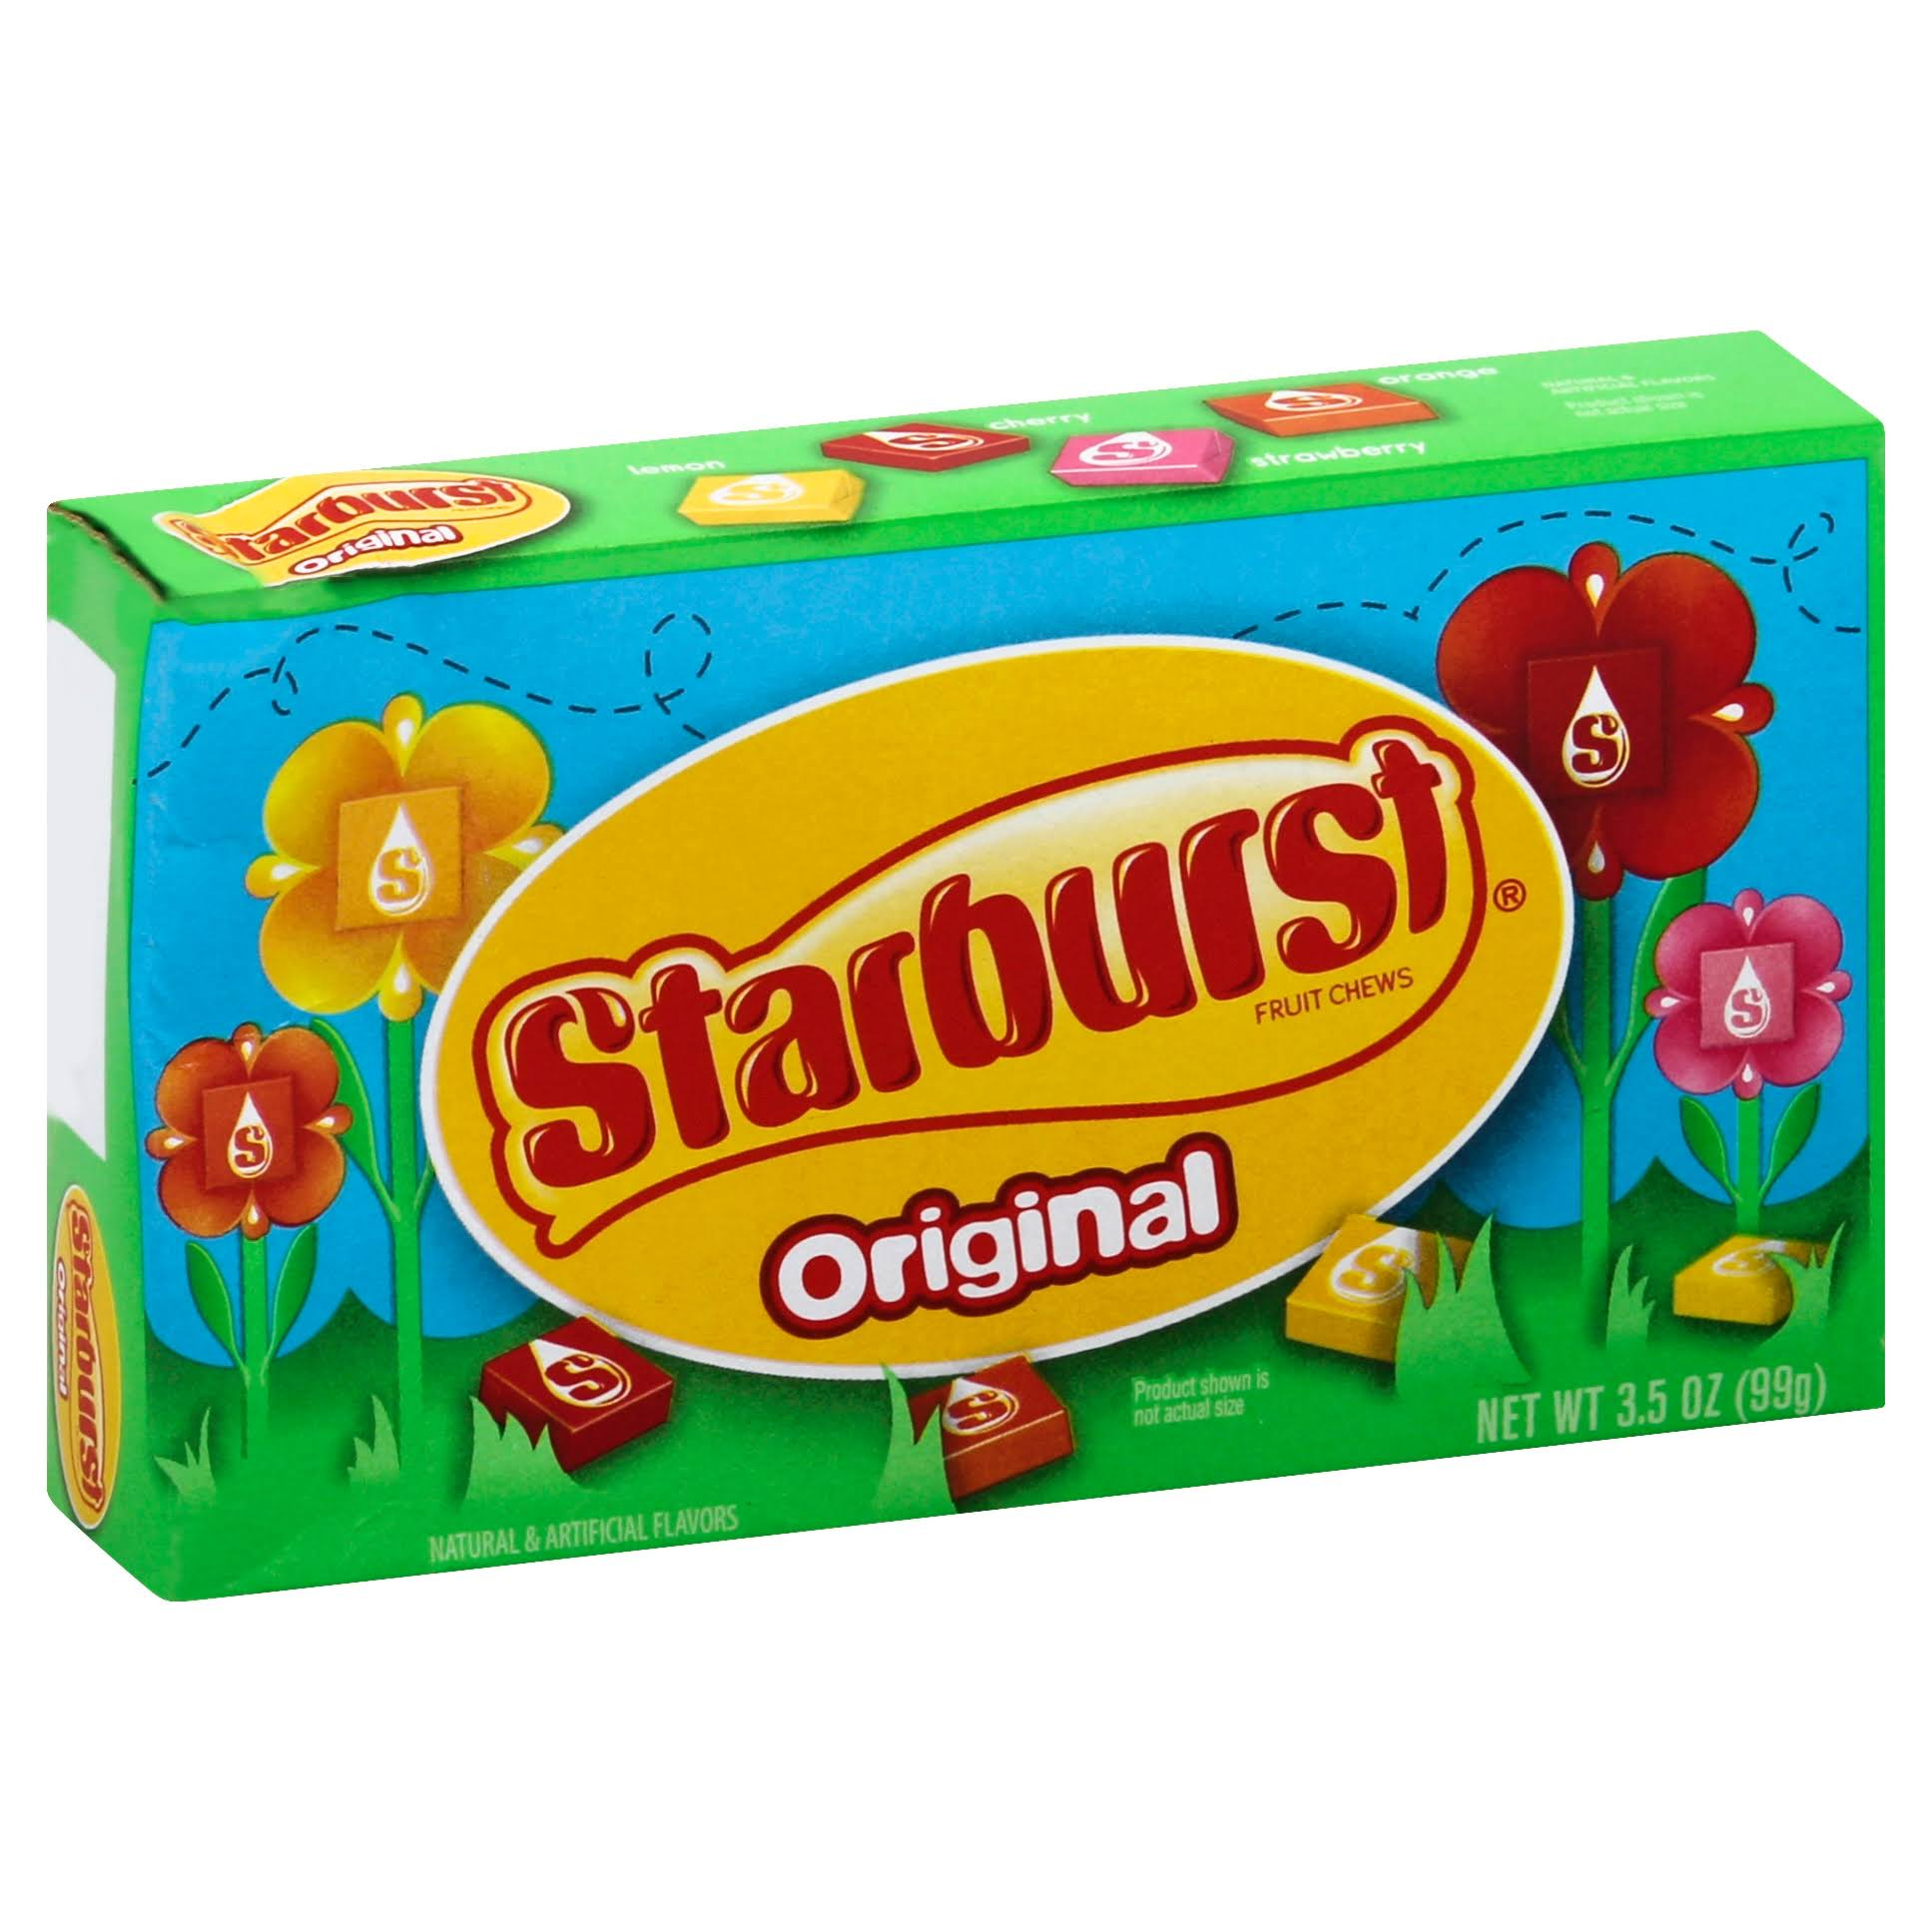 Starburst Original Candy - 3.5oz